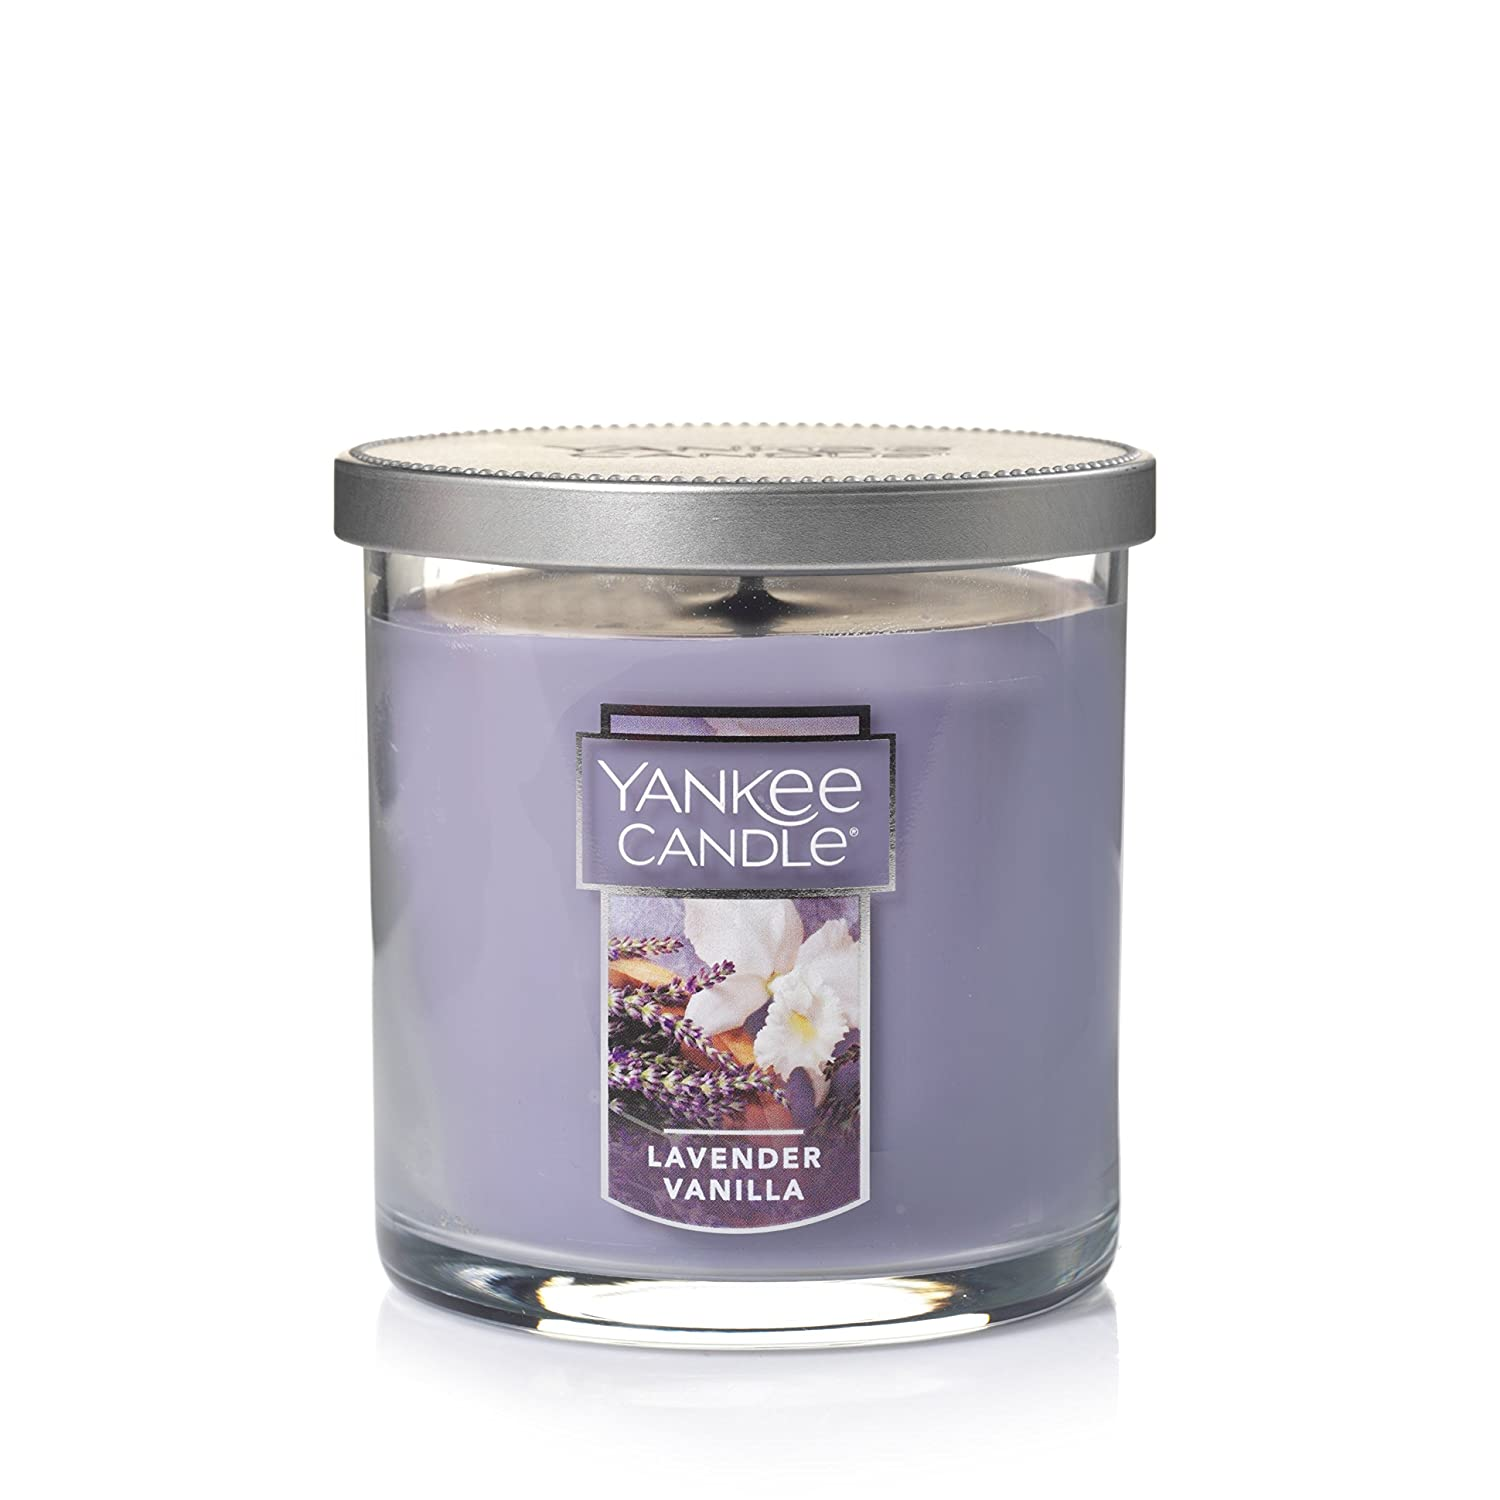 Yankee Candle Large 2-Wick Tumbler Candle, Lavender Vanilla Yankee Candle Company 1153016Z